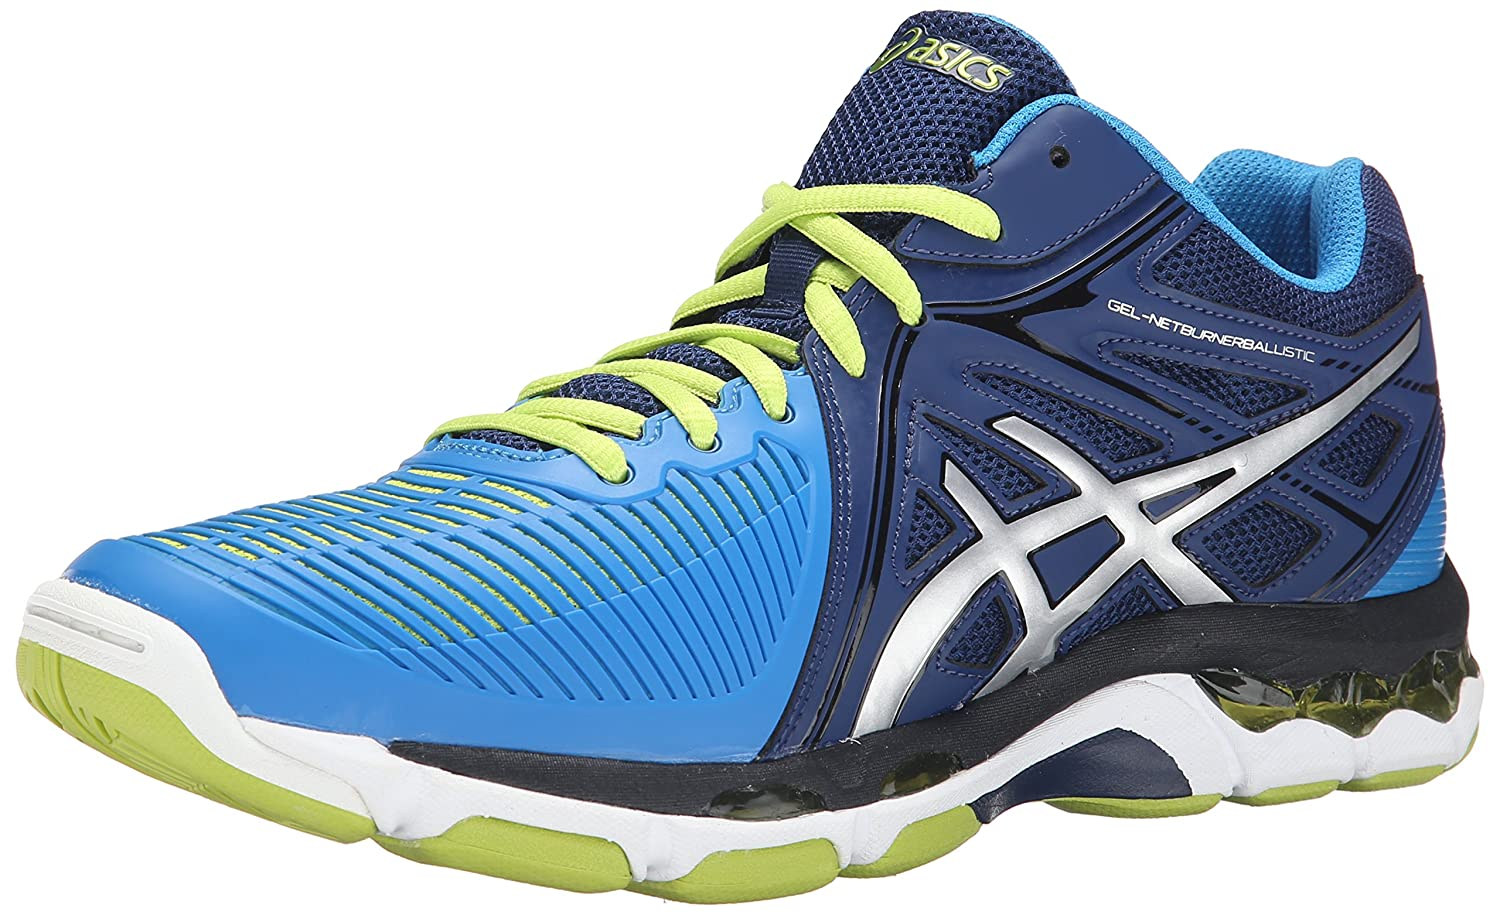 ASICS Men's GEL-Netburner Ballistic MT Volleyball Shoe ASICS America Corporation